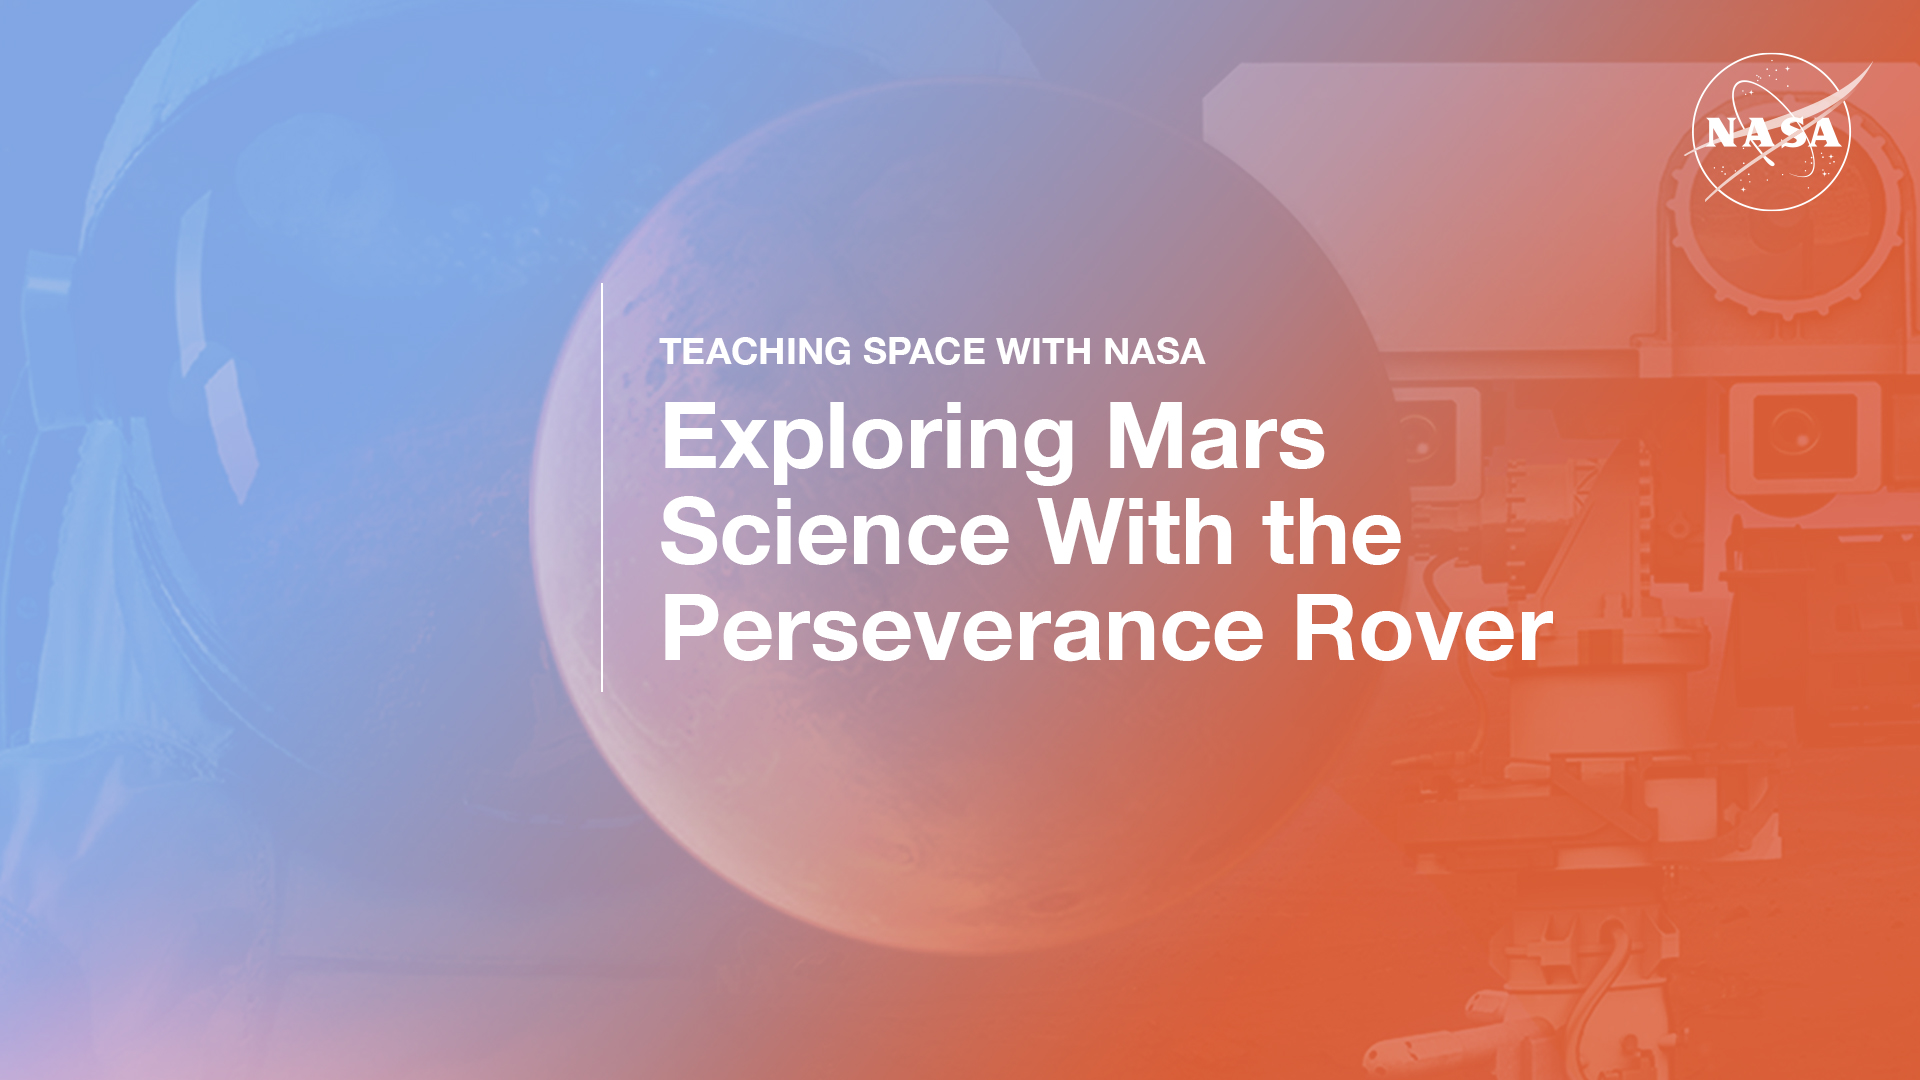 Graphic showing a collage of an astronaut, Mars and a Mars rover